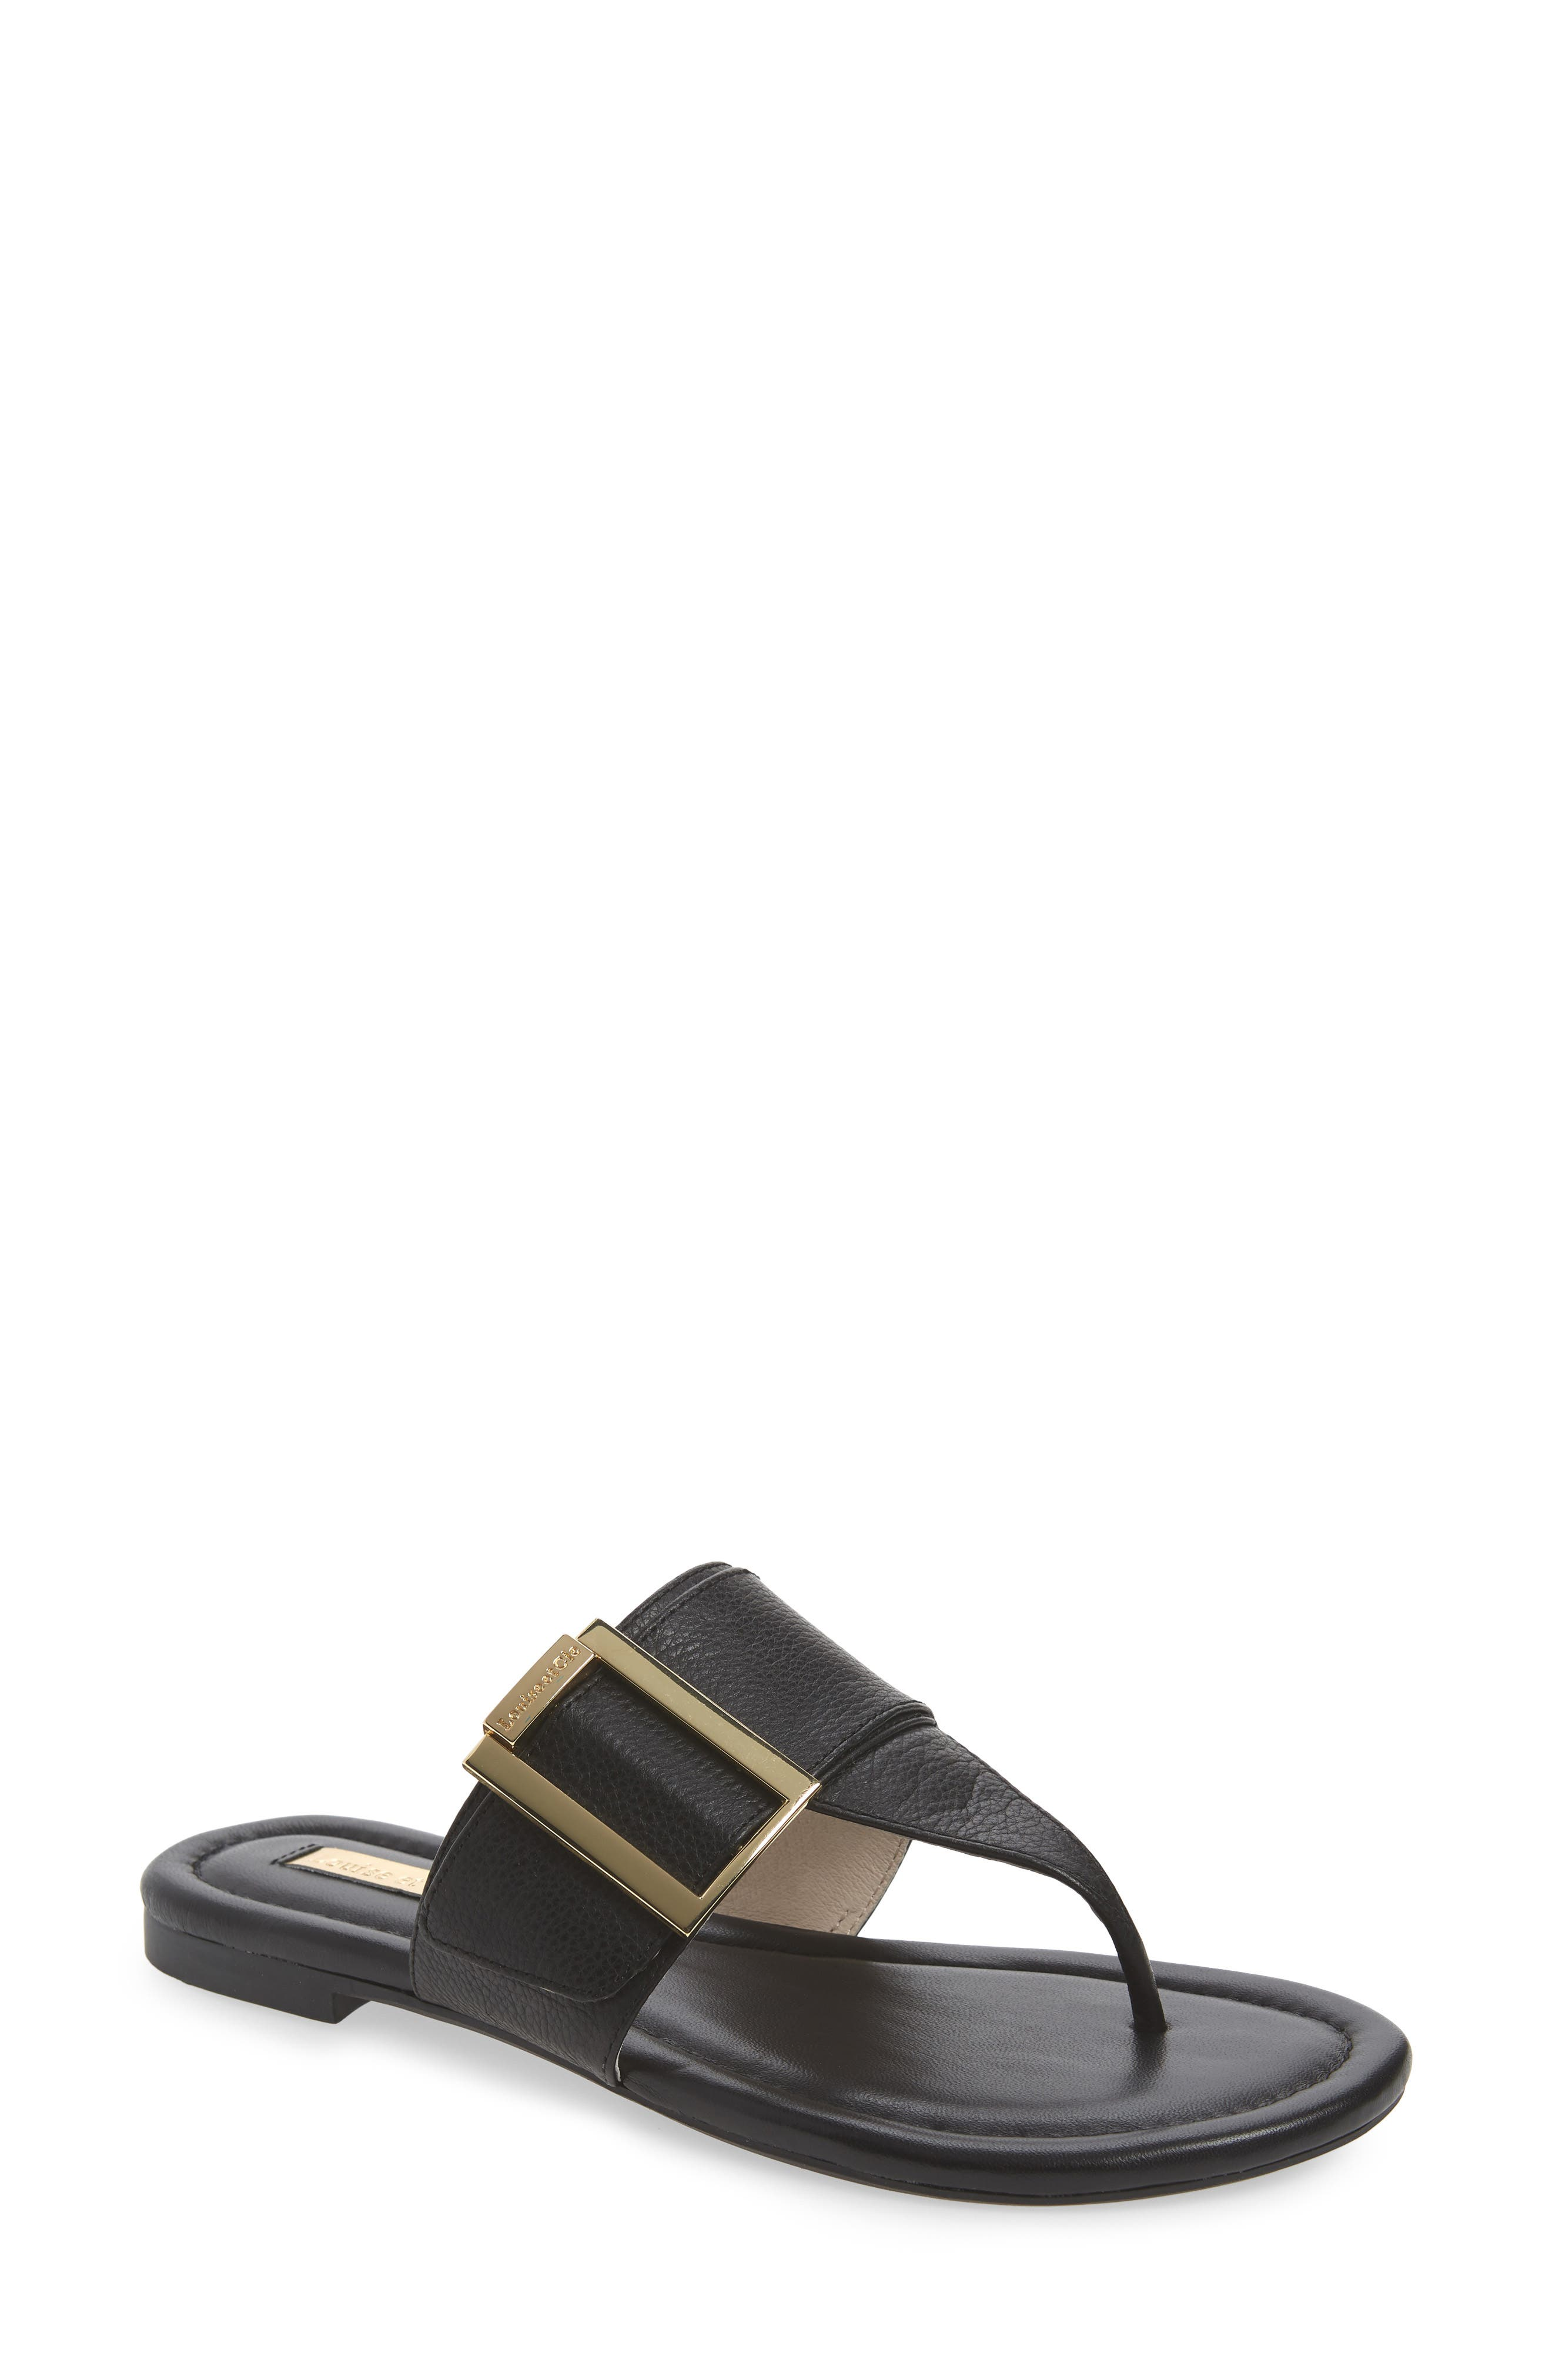 Alternate Image 1 Selected - Louise et Cie Agatha Sandal (Women)